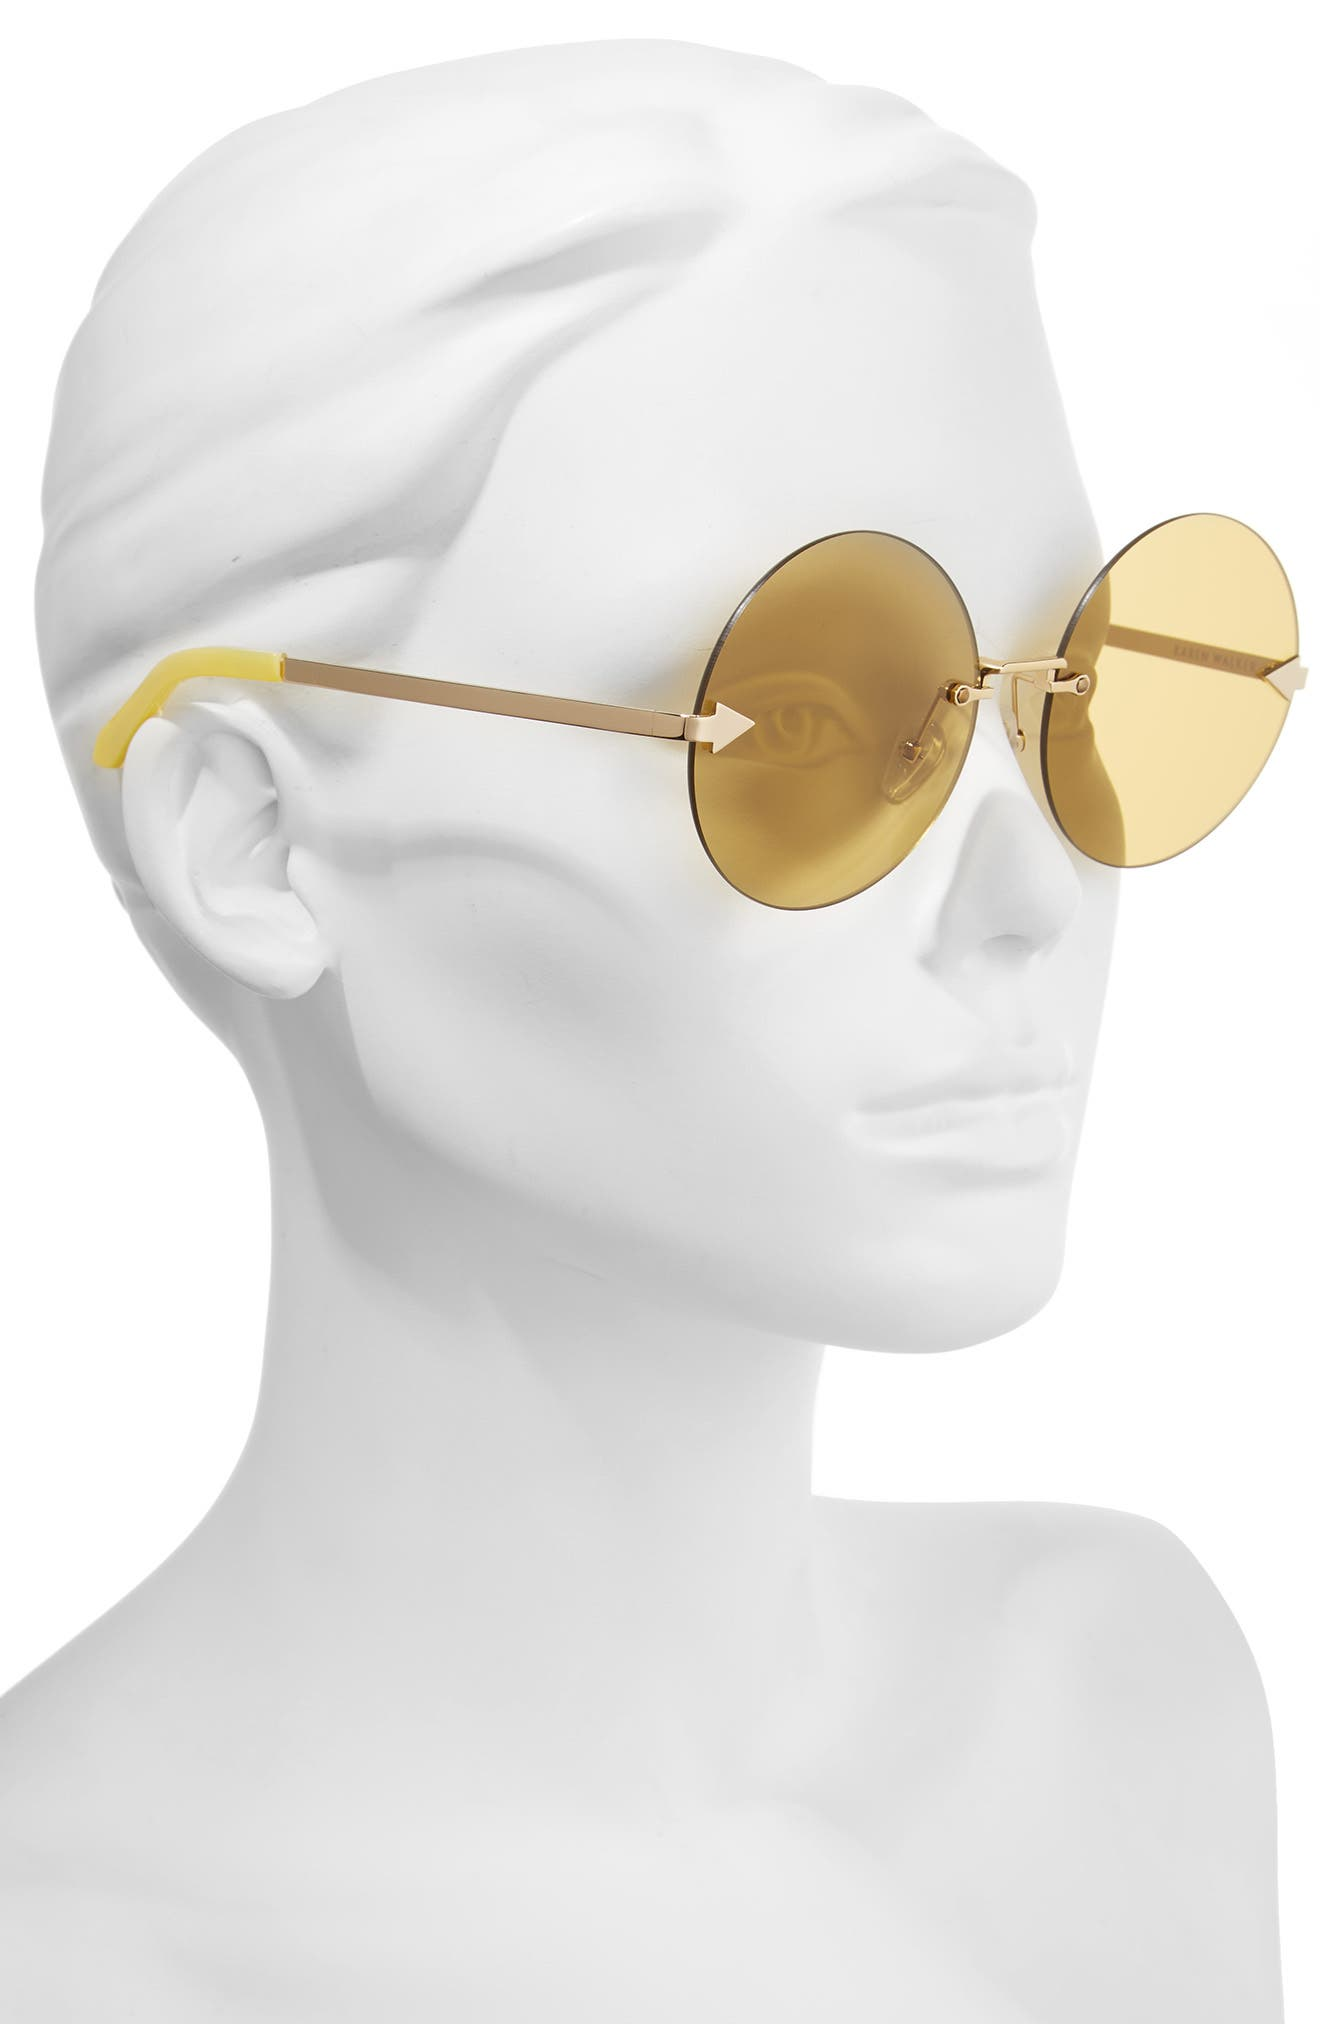 Disco Circus 60mm Rimless Round Sunglasses,                             Alternate thumbnail 3, color,                             Marigold/ Gold